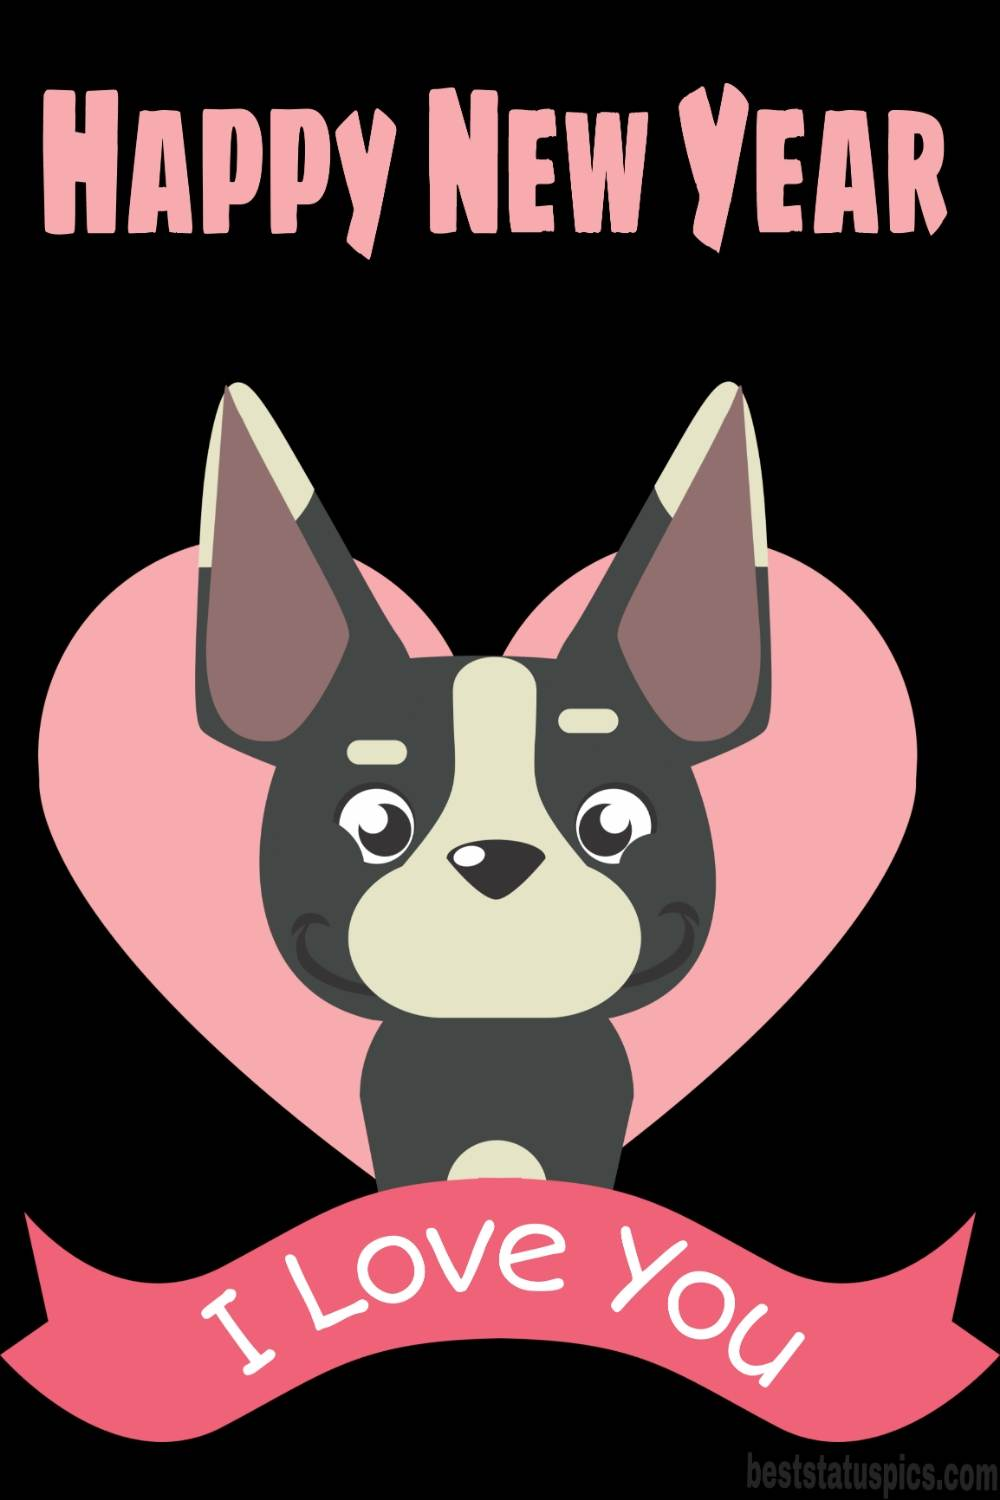 Happy new year 2022 and I love you wishes pic with cute dog and heart